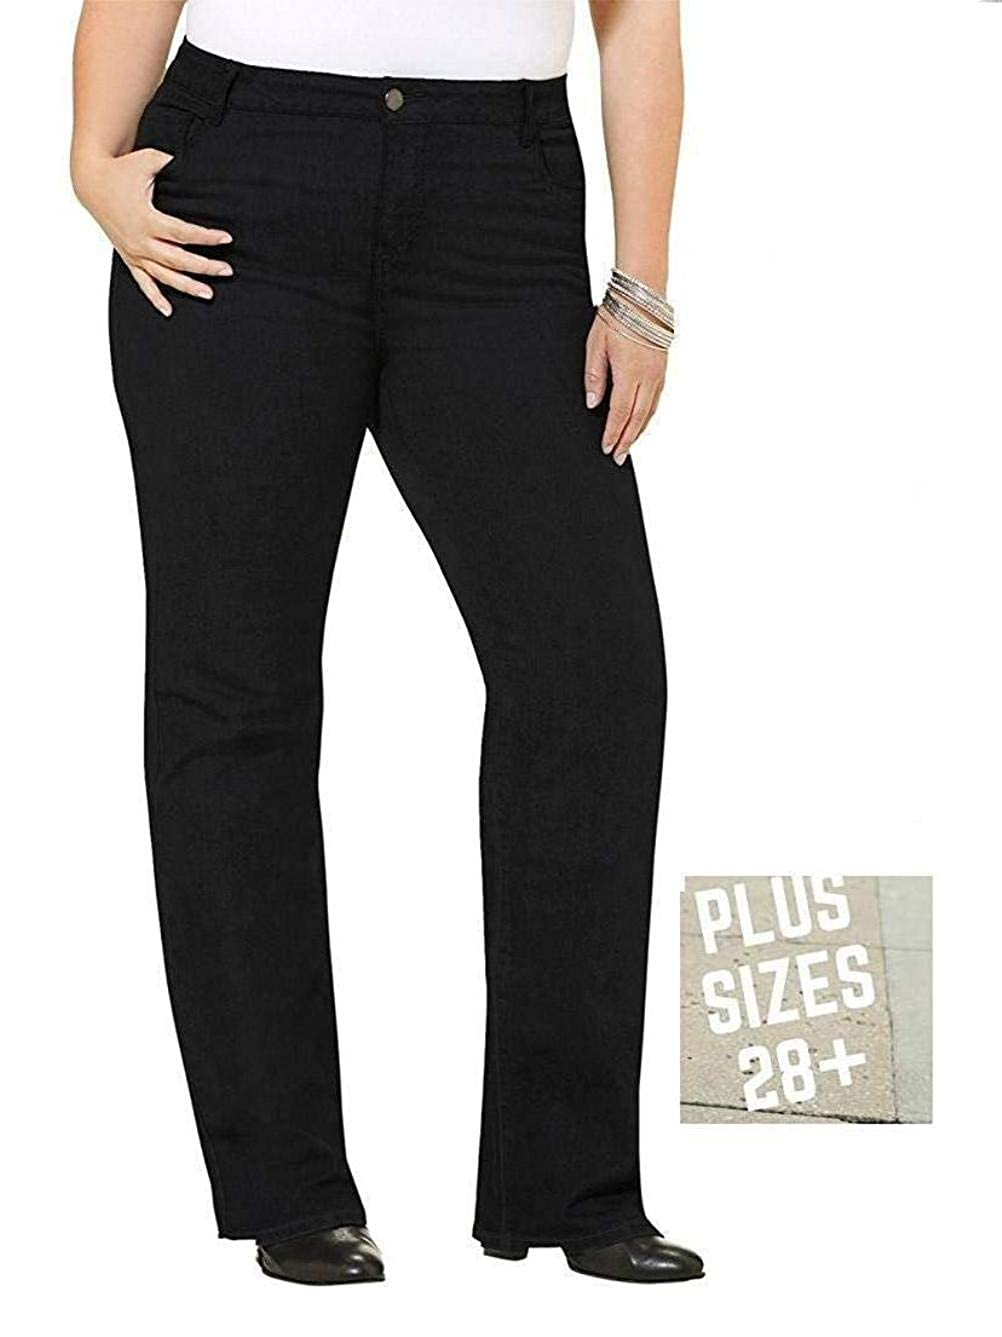 fc8af1688b1 Jack Dvid Avenue Diamante Extended Womens Plus Size Bootcut Straight Skinny  Leg Jean Stretch Denim Jeans Pants UP to 8X   28+ at Amazon Women s Jeans  store